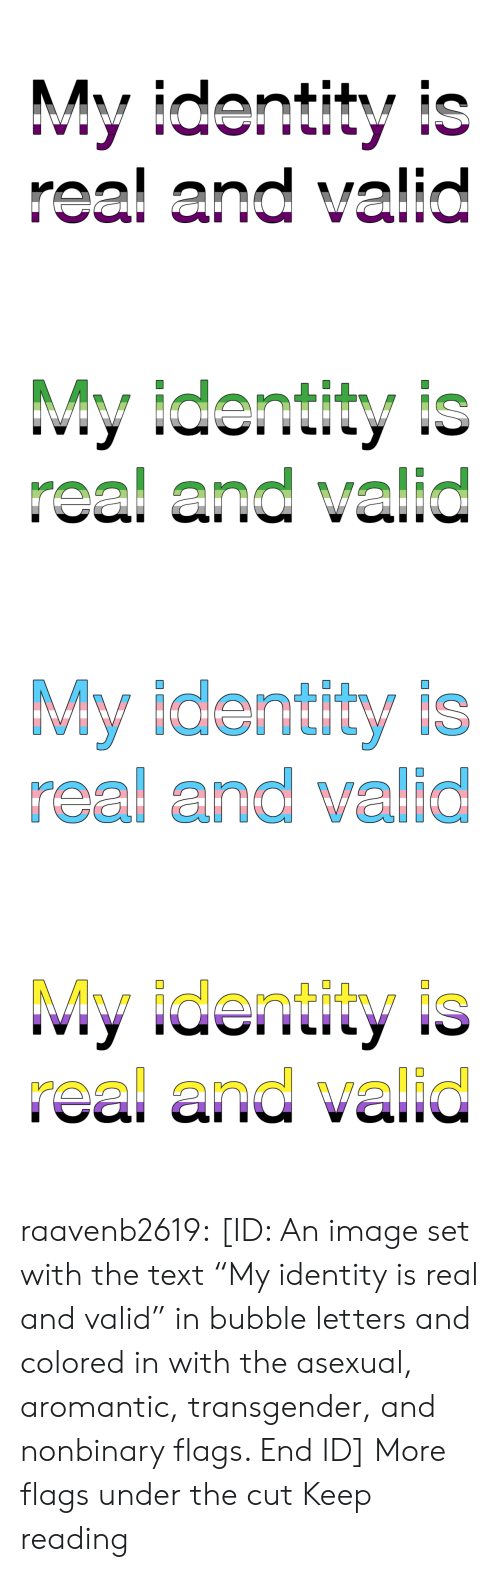 """Transgender, Tumblr, and Asexual: My identity is  real and valid   My identity is  real and valid   My identity is  real and valid   My identity is  real and valid raavenb2619:  [ID: An image set with the text """"My identity is real and valid"""" in bubble letters and colored in with the asexual, aromantic, transgender, and nonbinary flags. End ID]  More flags under the cut  Keep reading"""